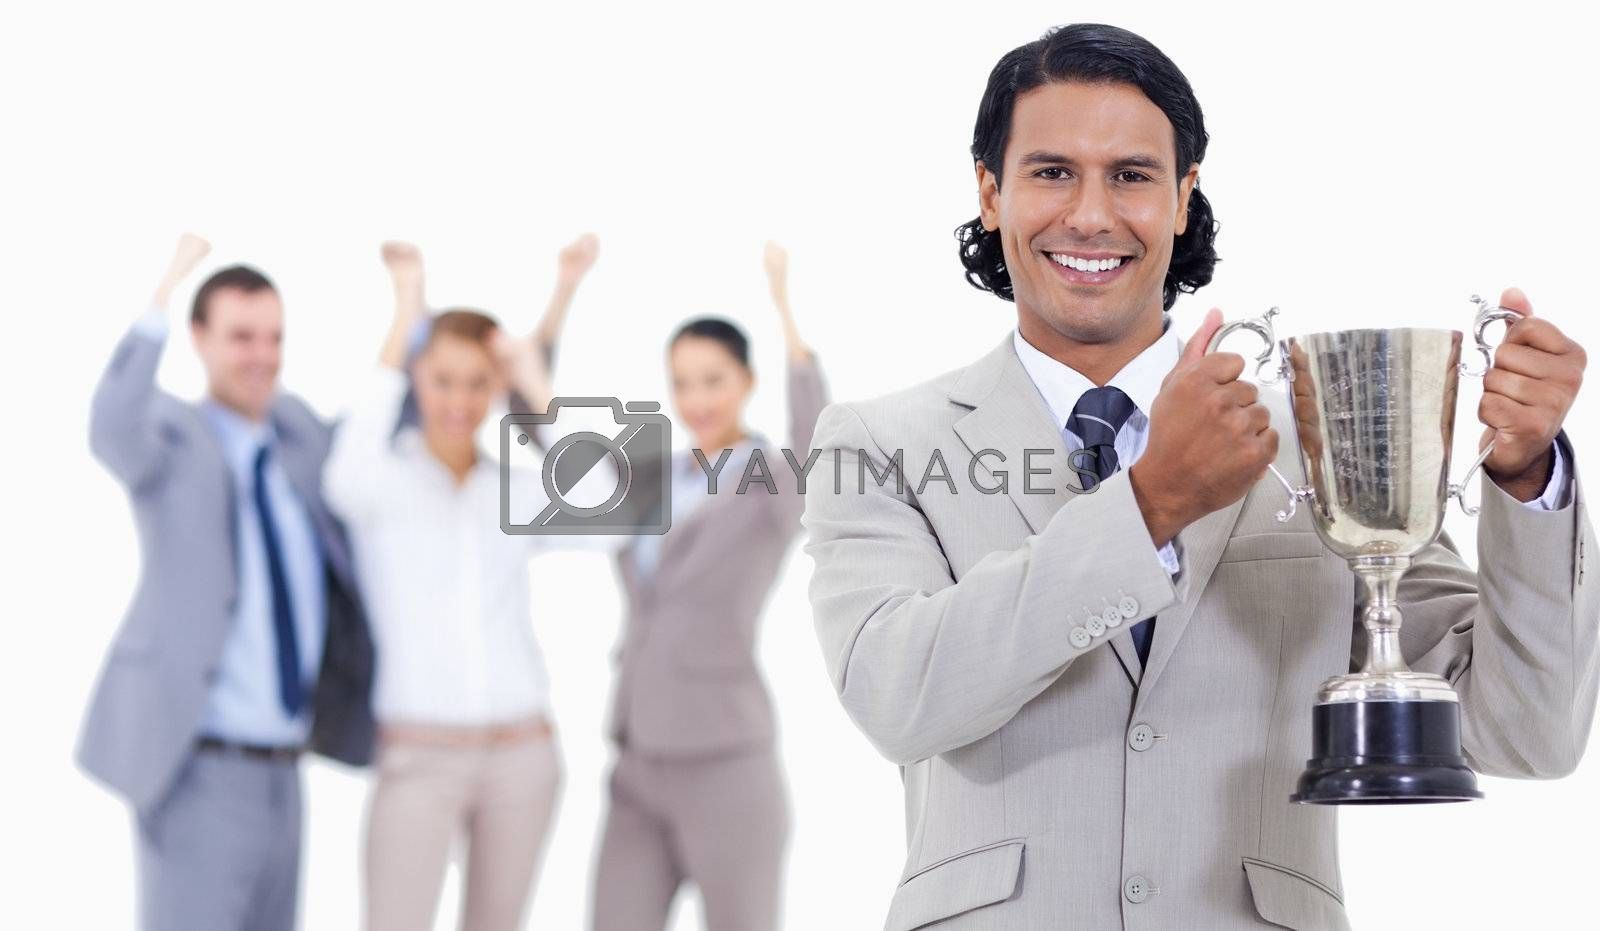 Close-up of a businessman smiling and holding a cup with people cheering behind him against white background